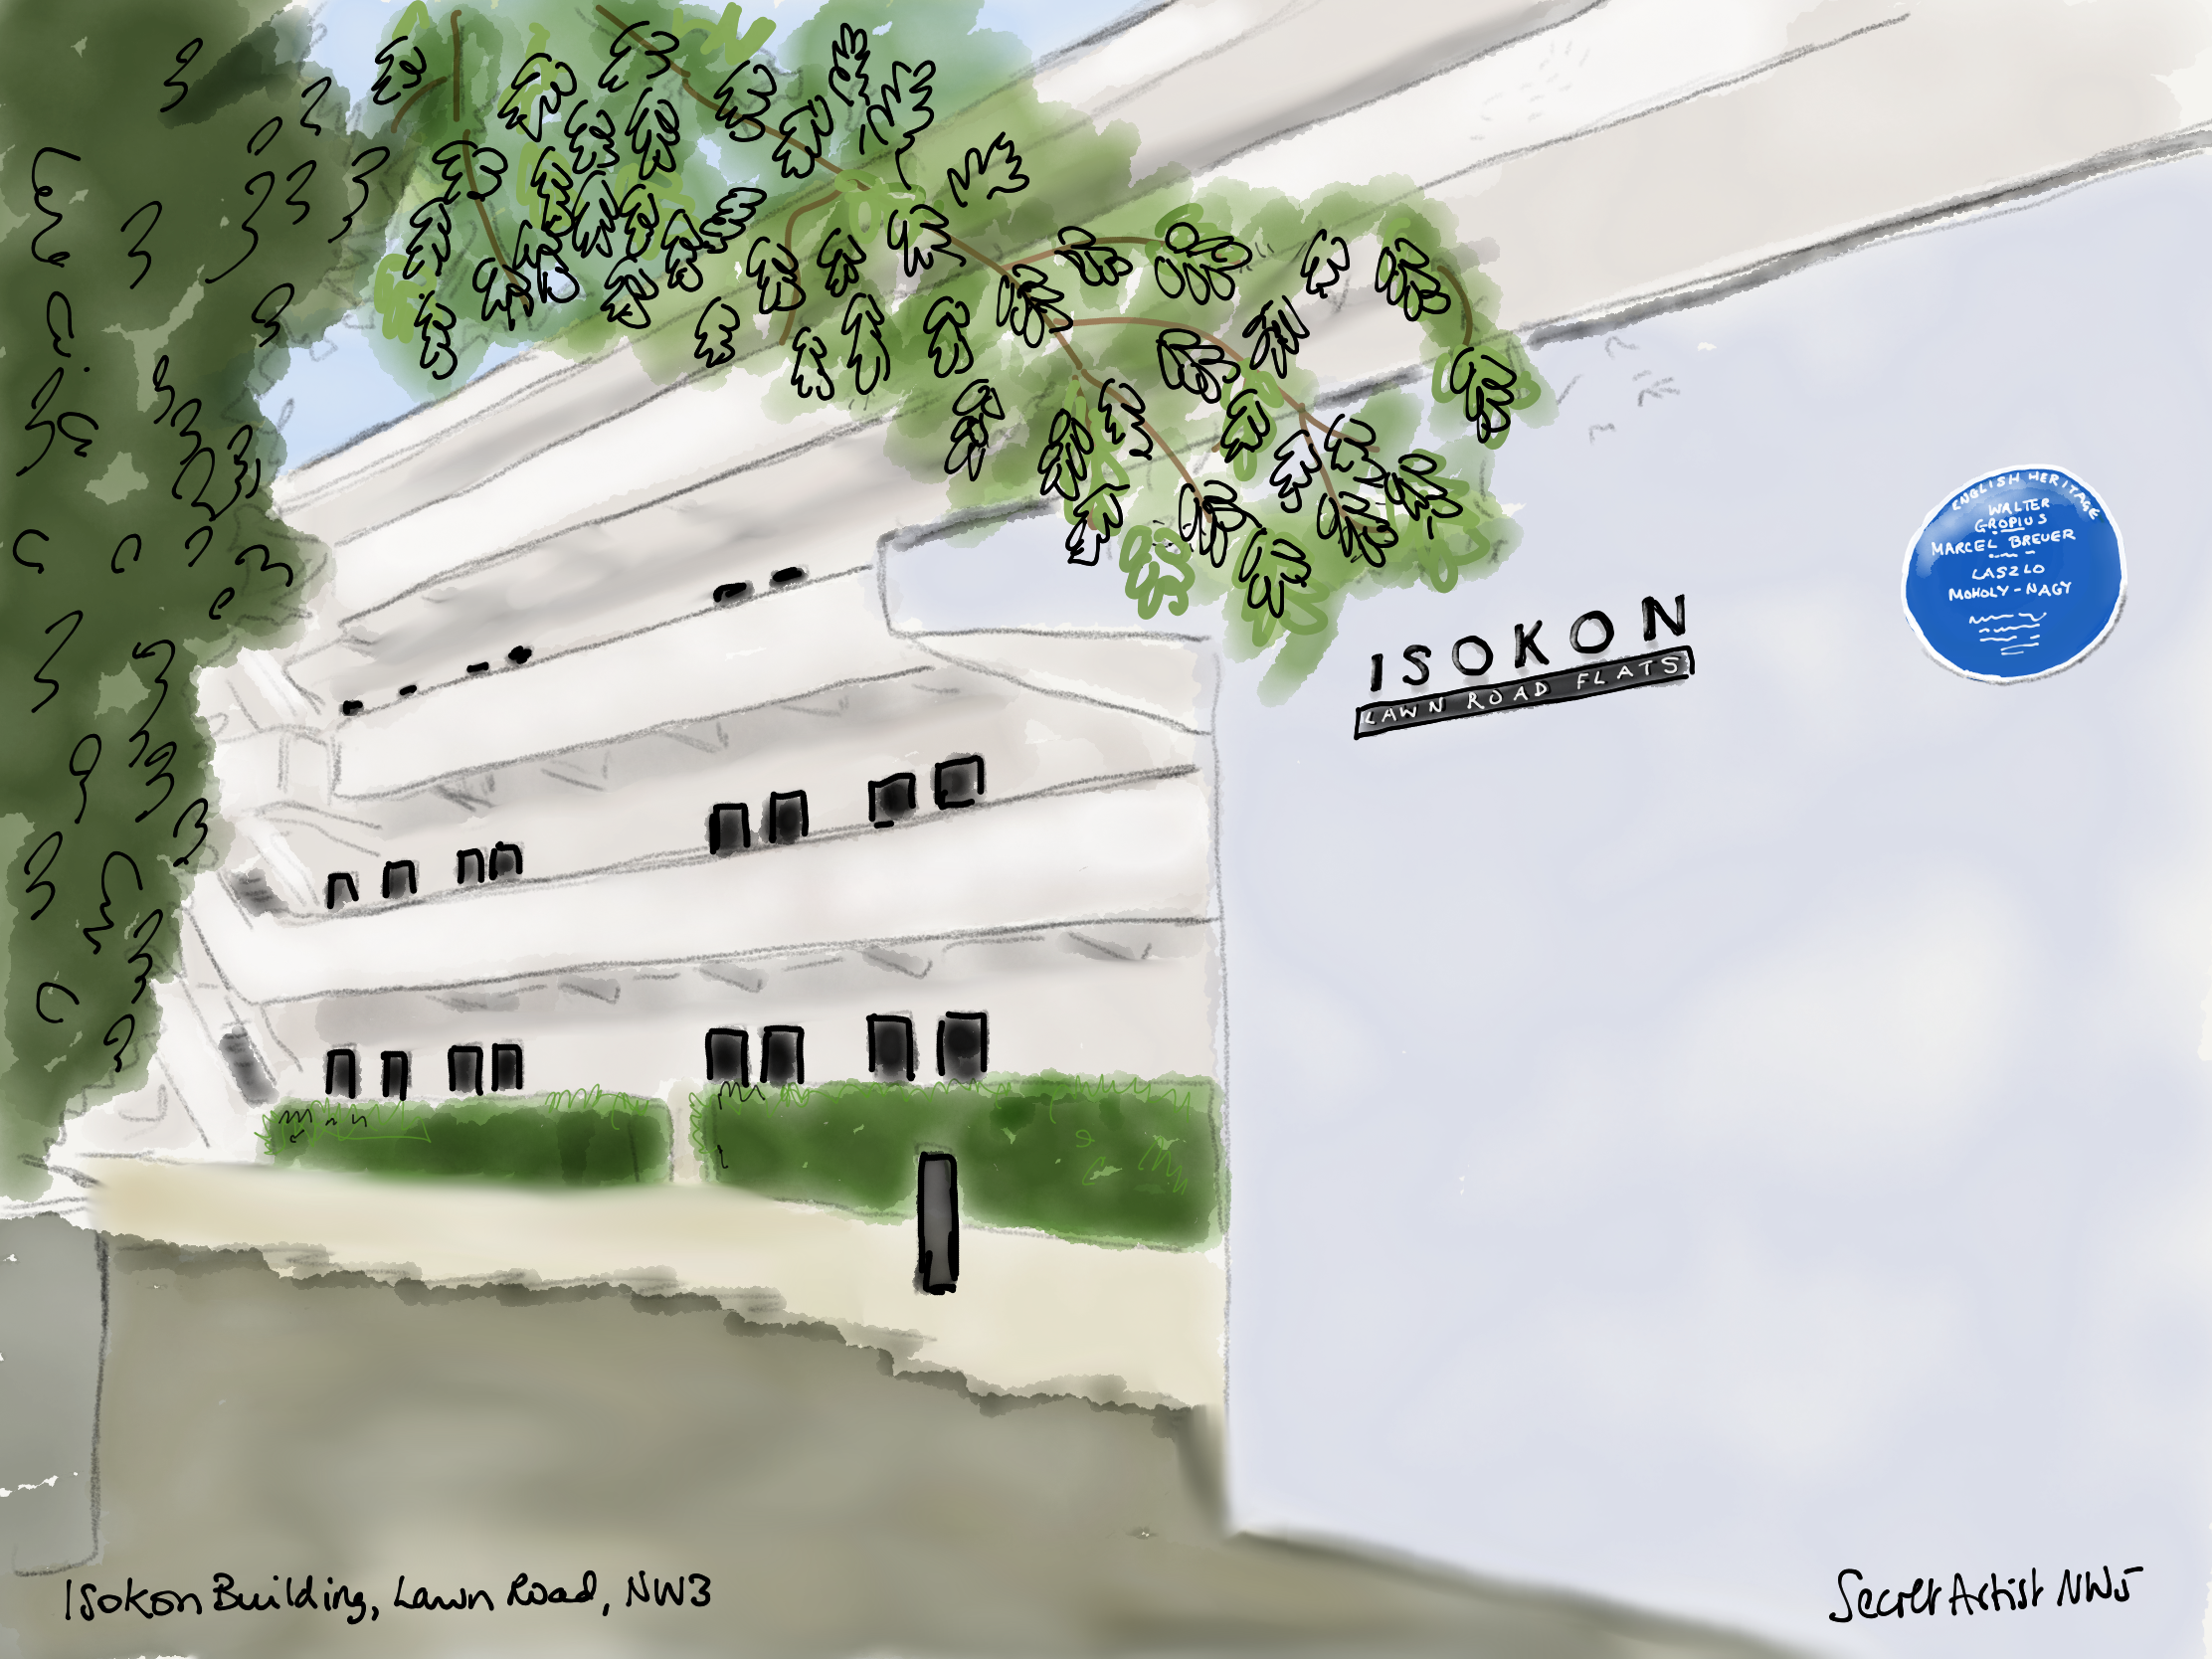 The Isokon Building (3)